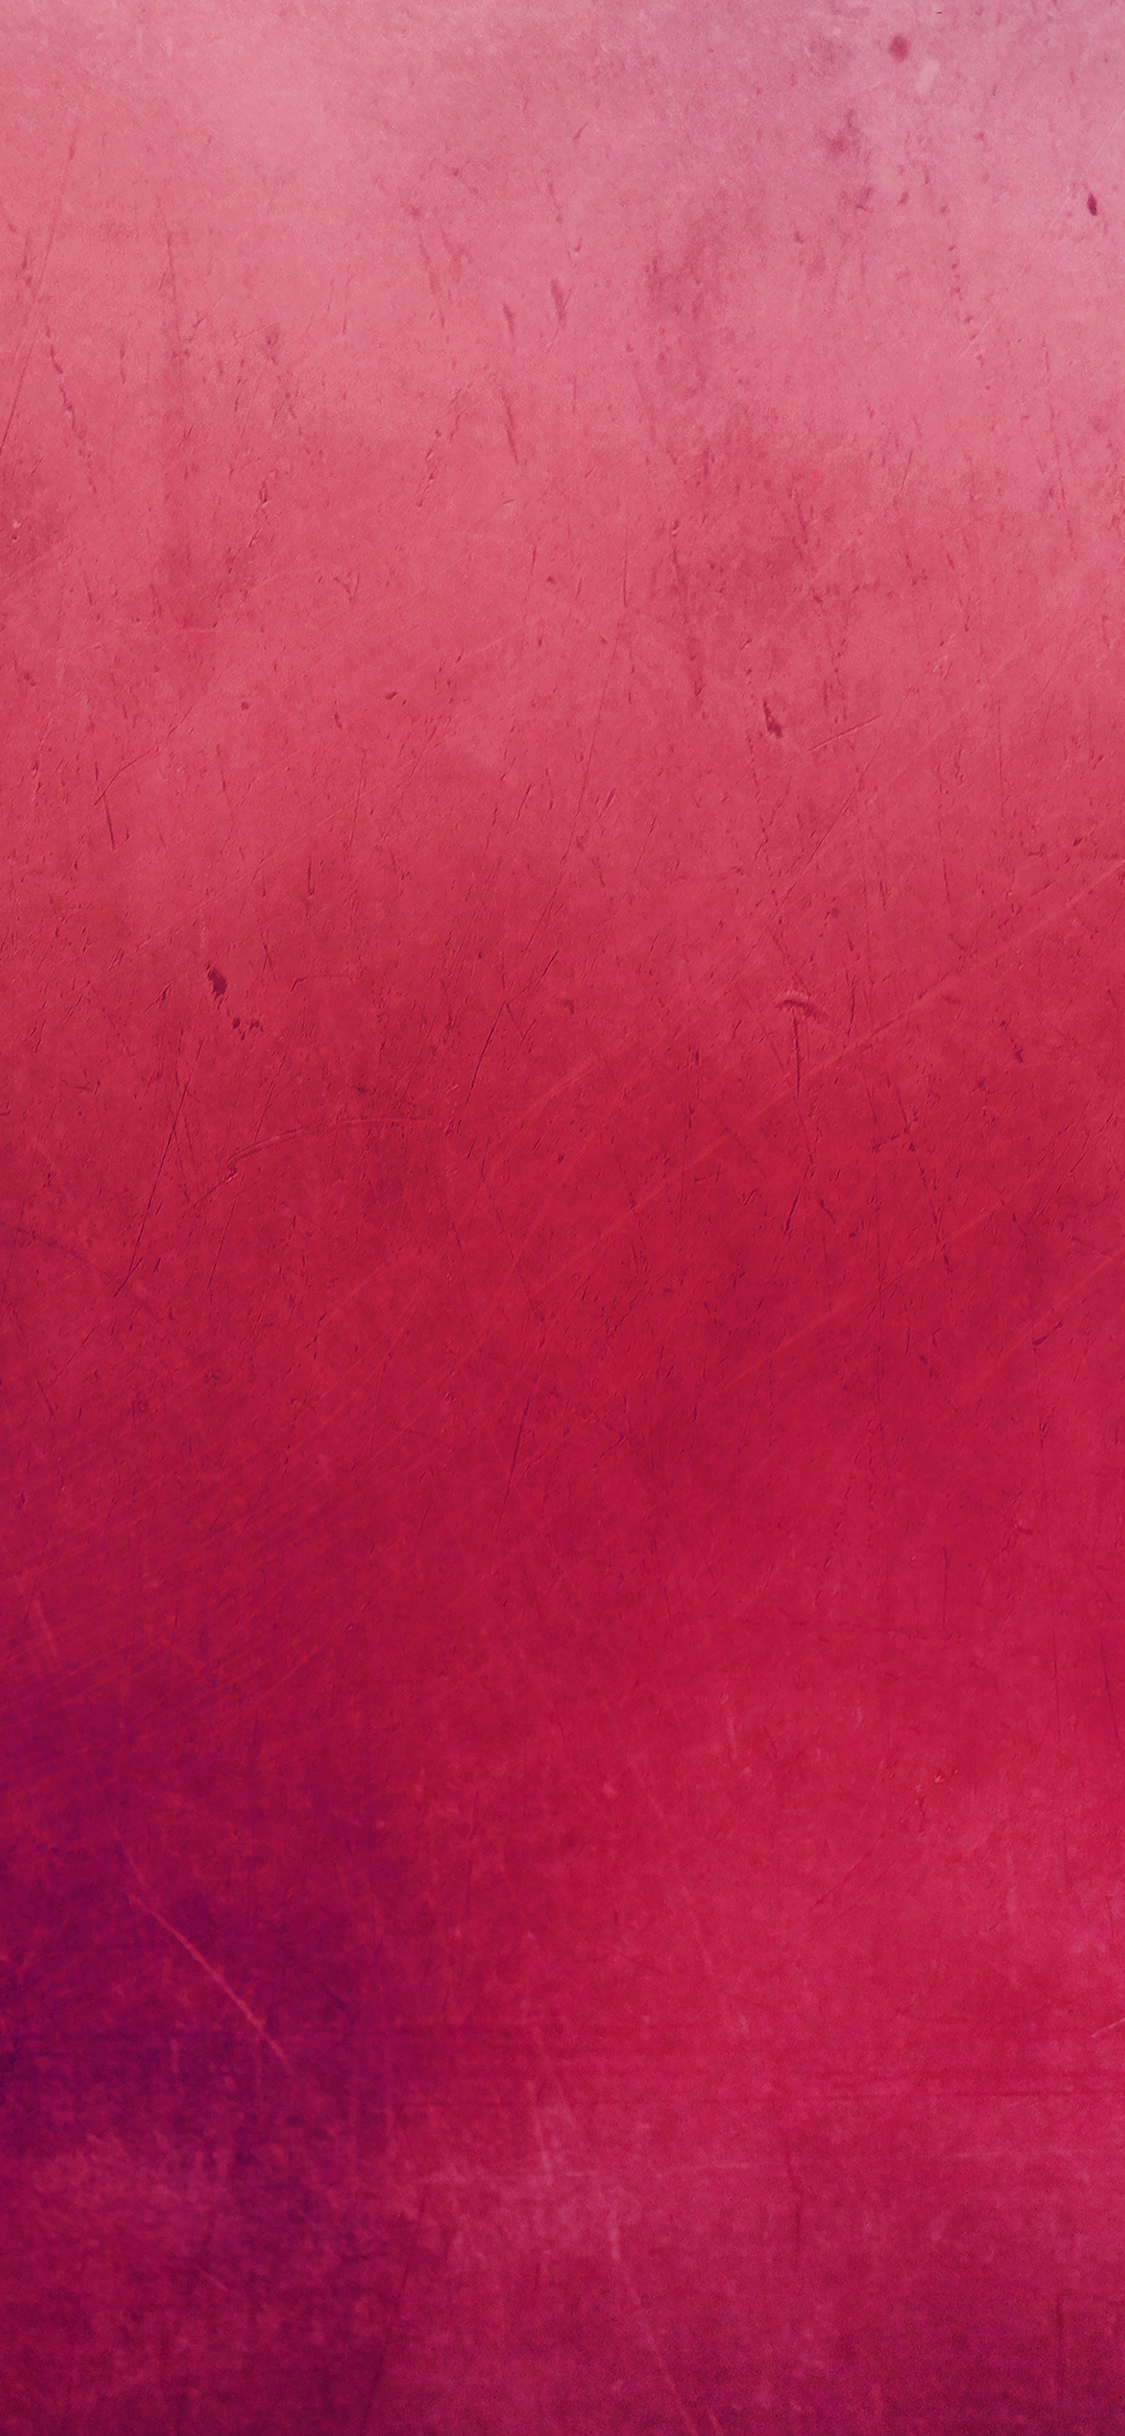 iPhoneXpapers.com-Apple-iPhone-wallpaper-vf04-sandstone-red-texture-pattern